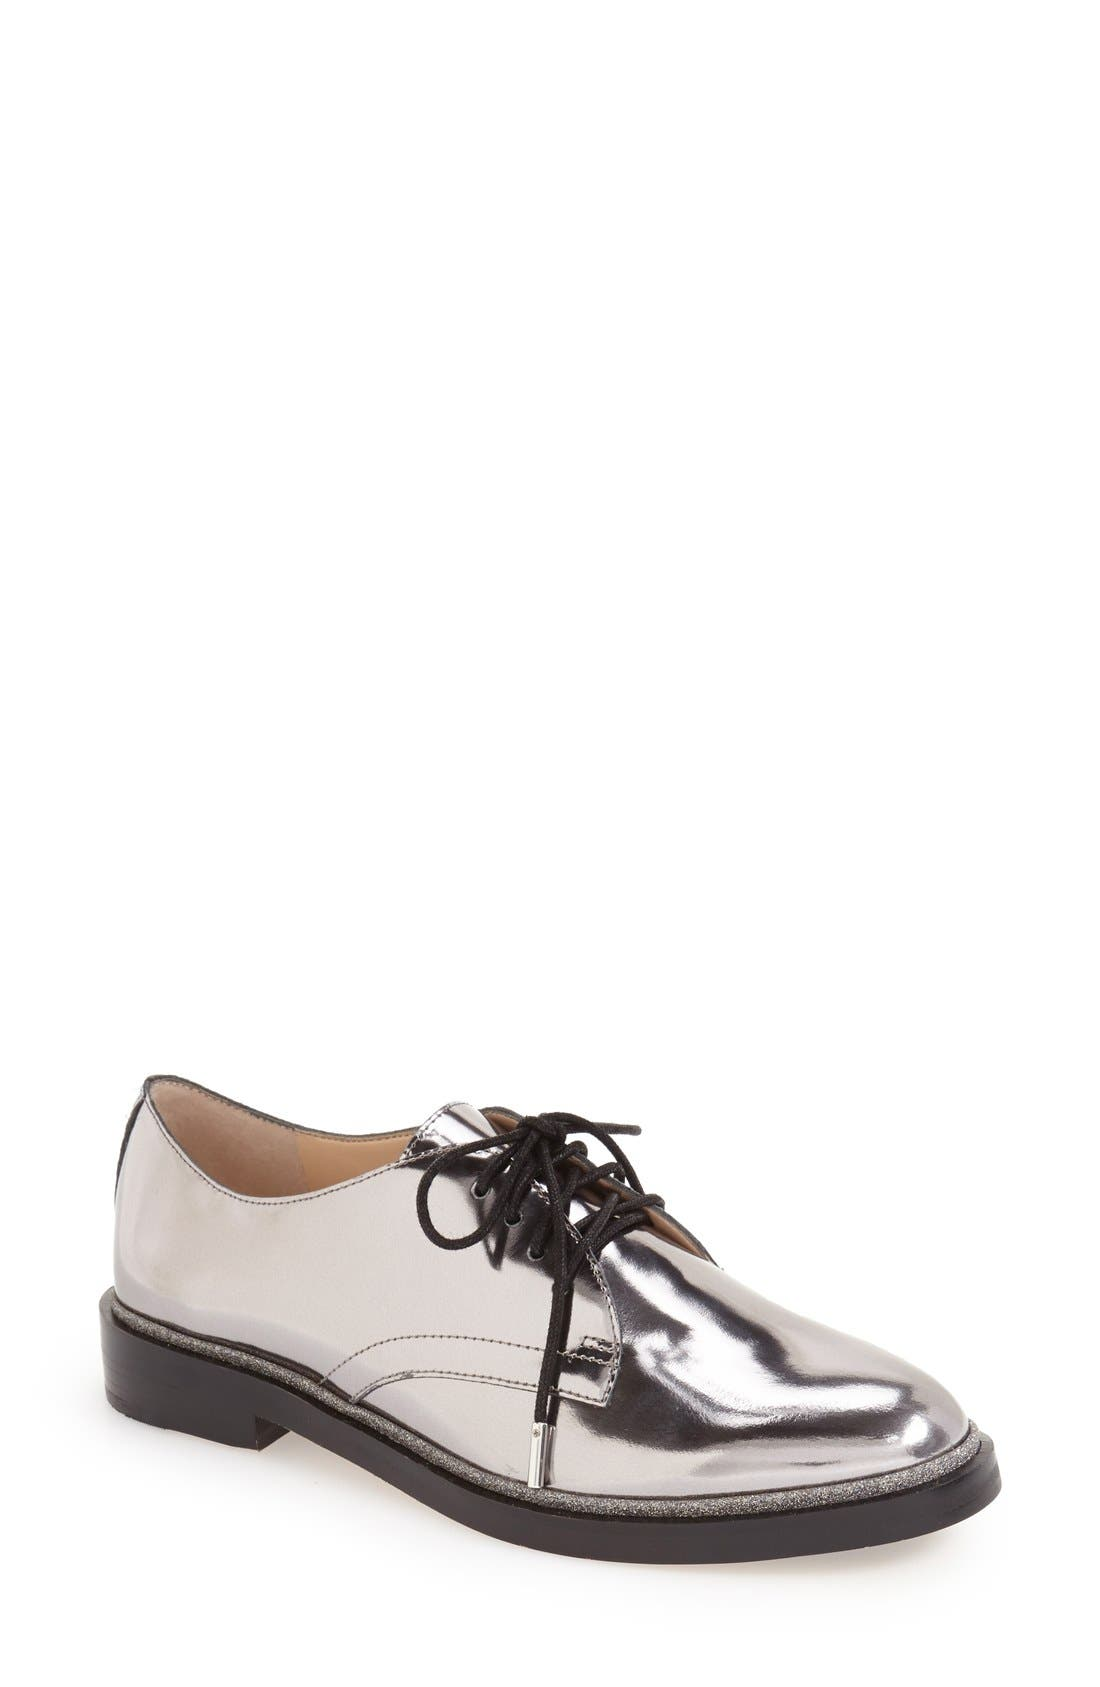 Alternate Image 1 Selected - Vince Camuto 'Ciana' Oxford (Women)